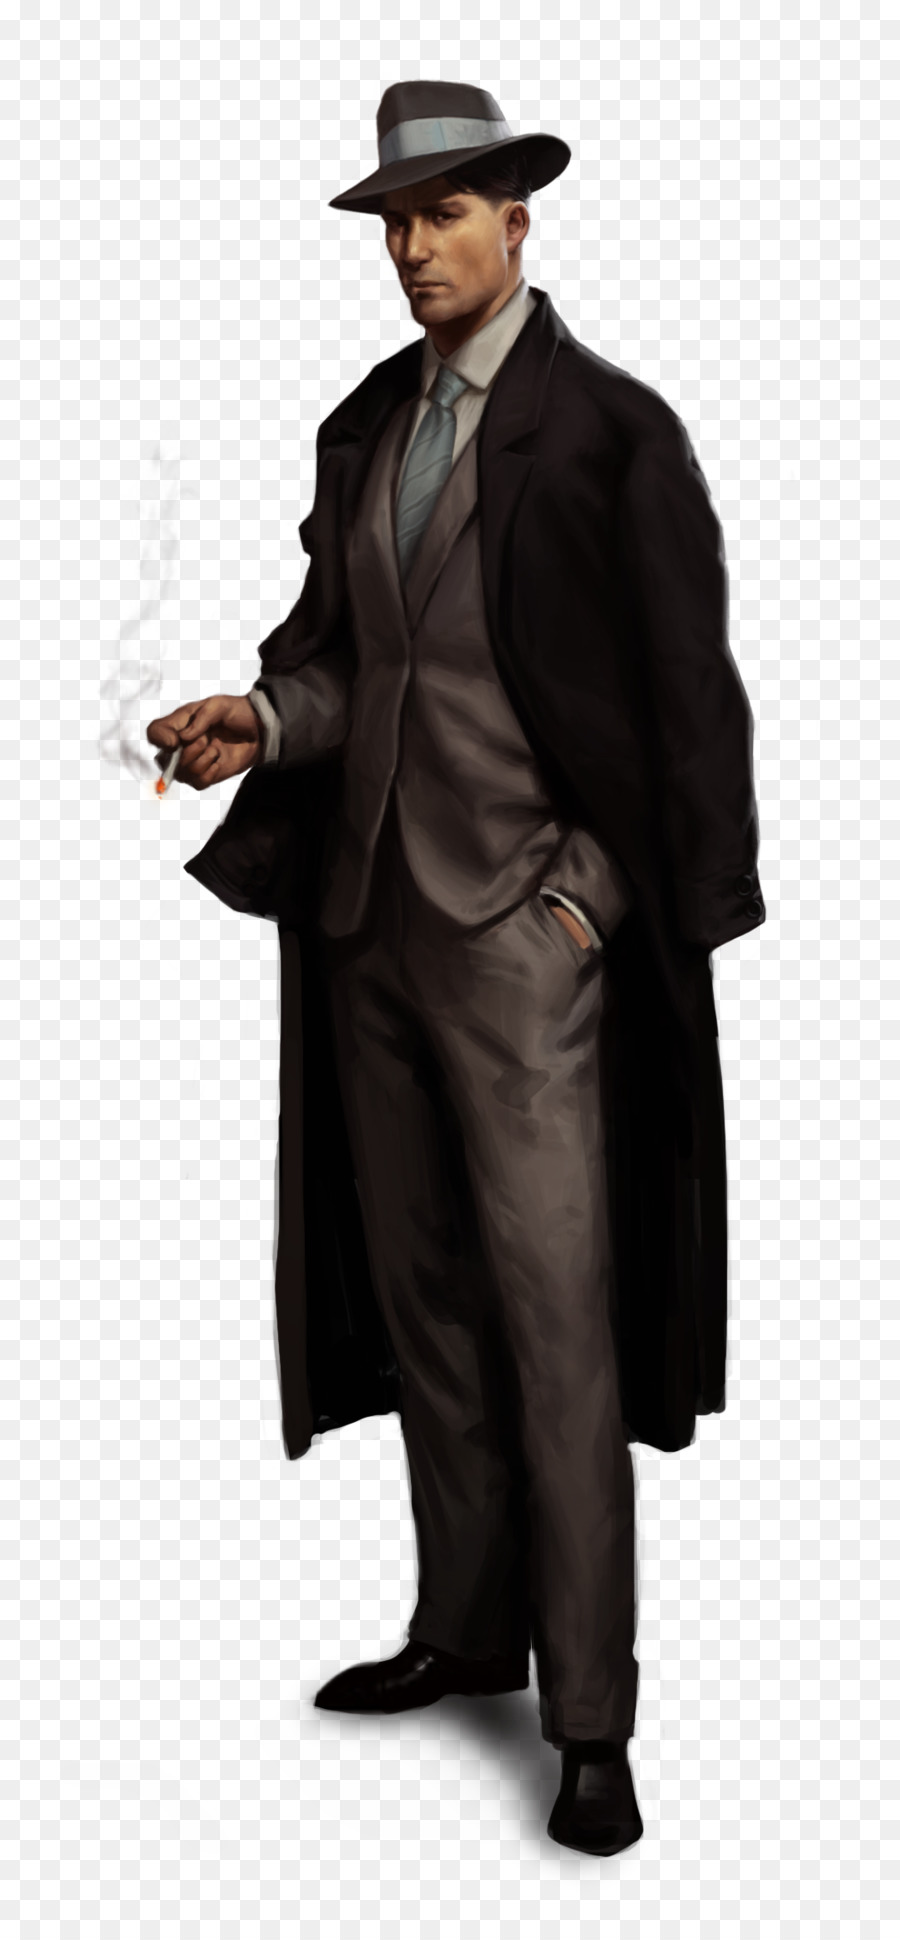 zoot suit gangster the godfather fashion gangster png download